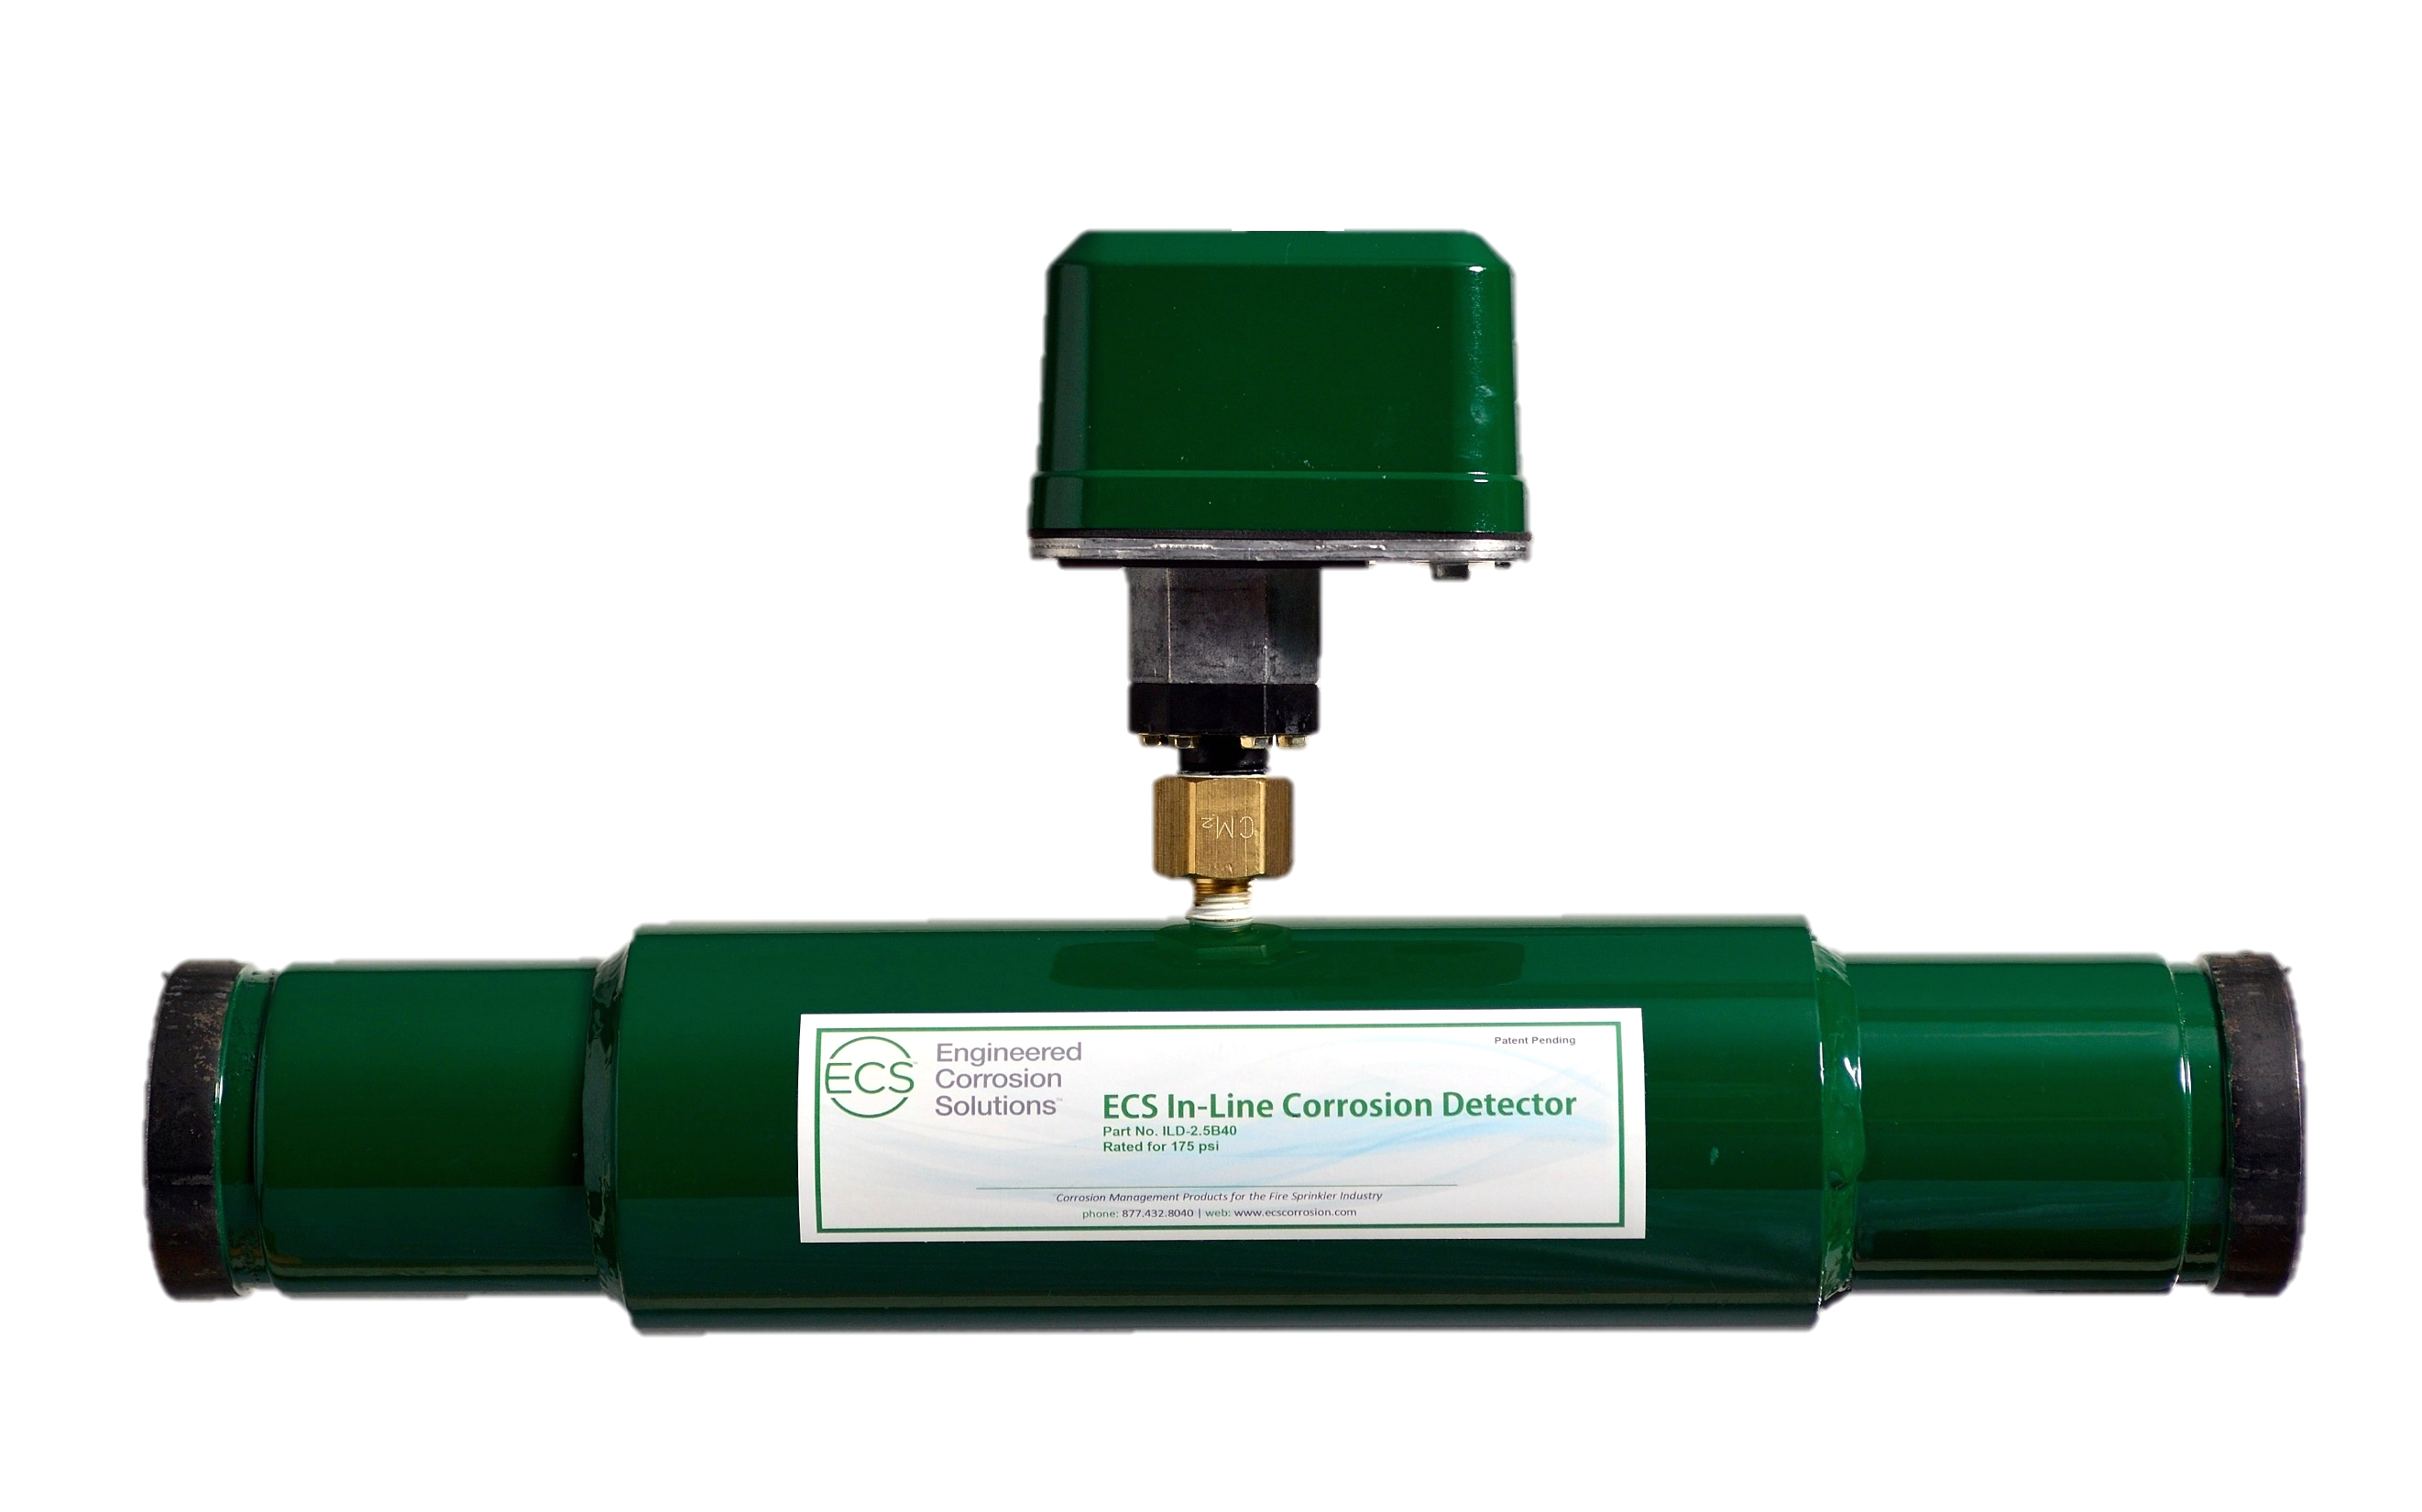 ECS In-Line Corrosion Detector device